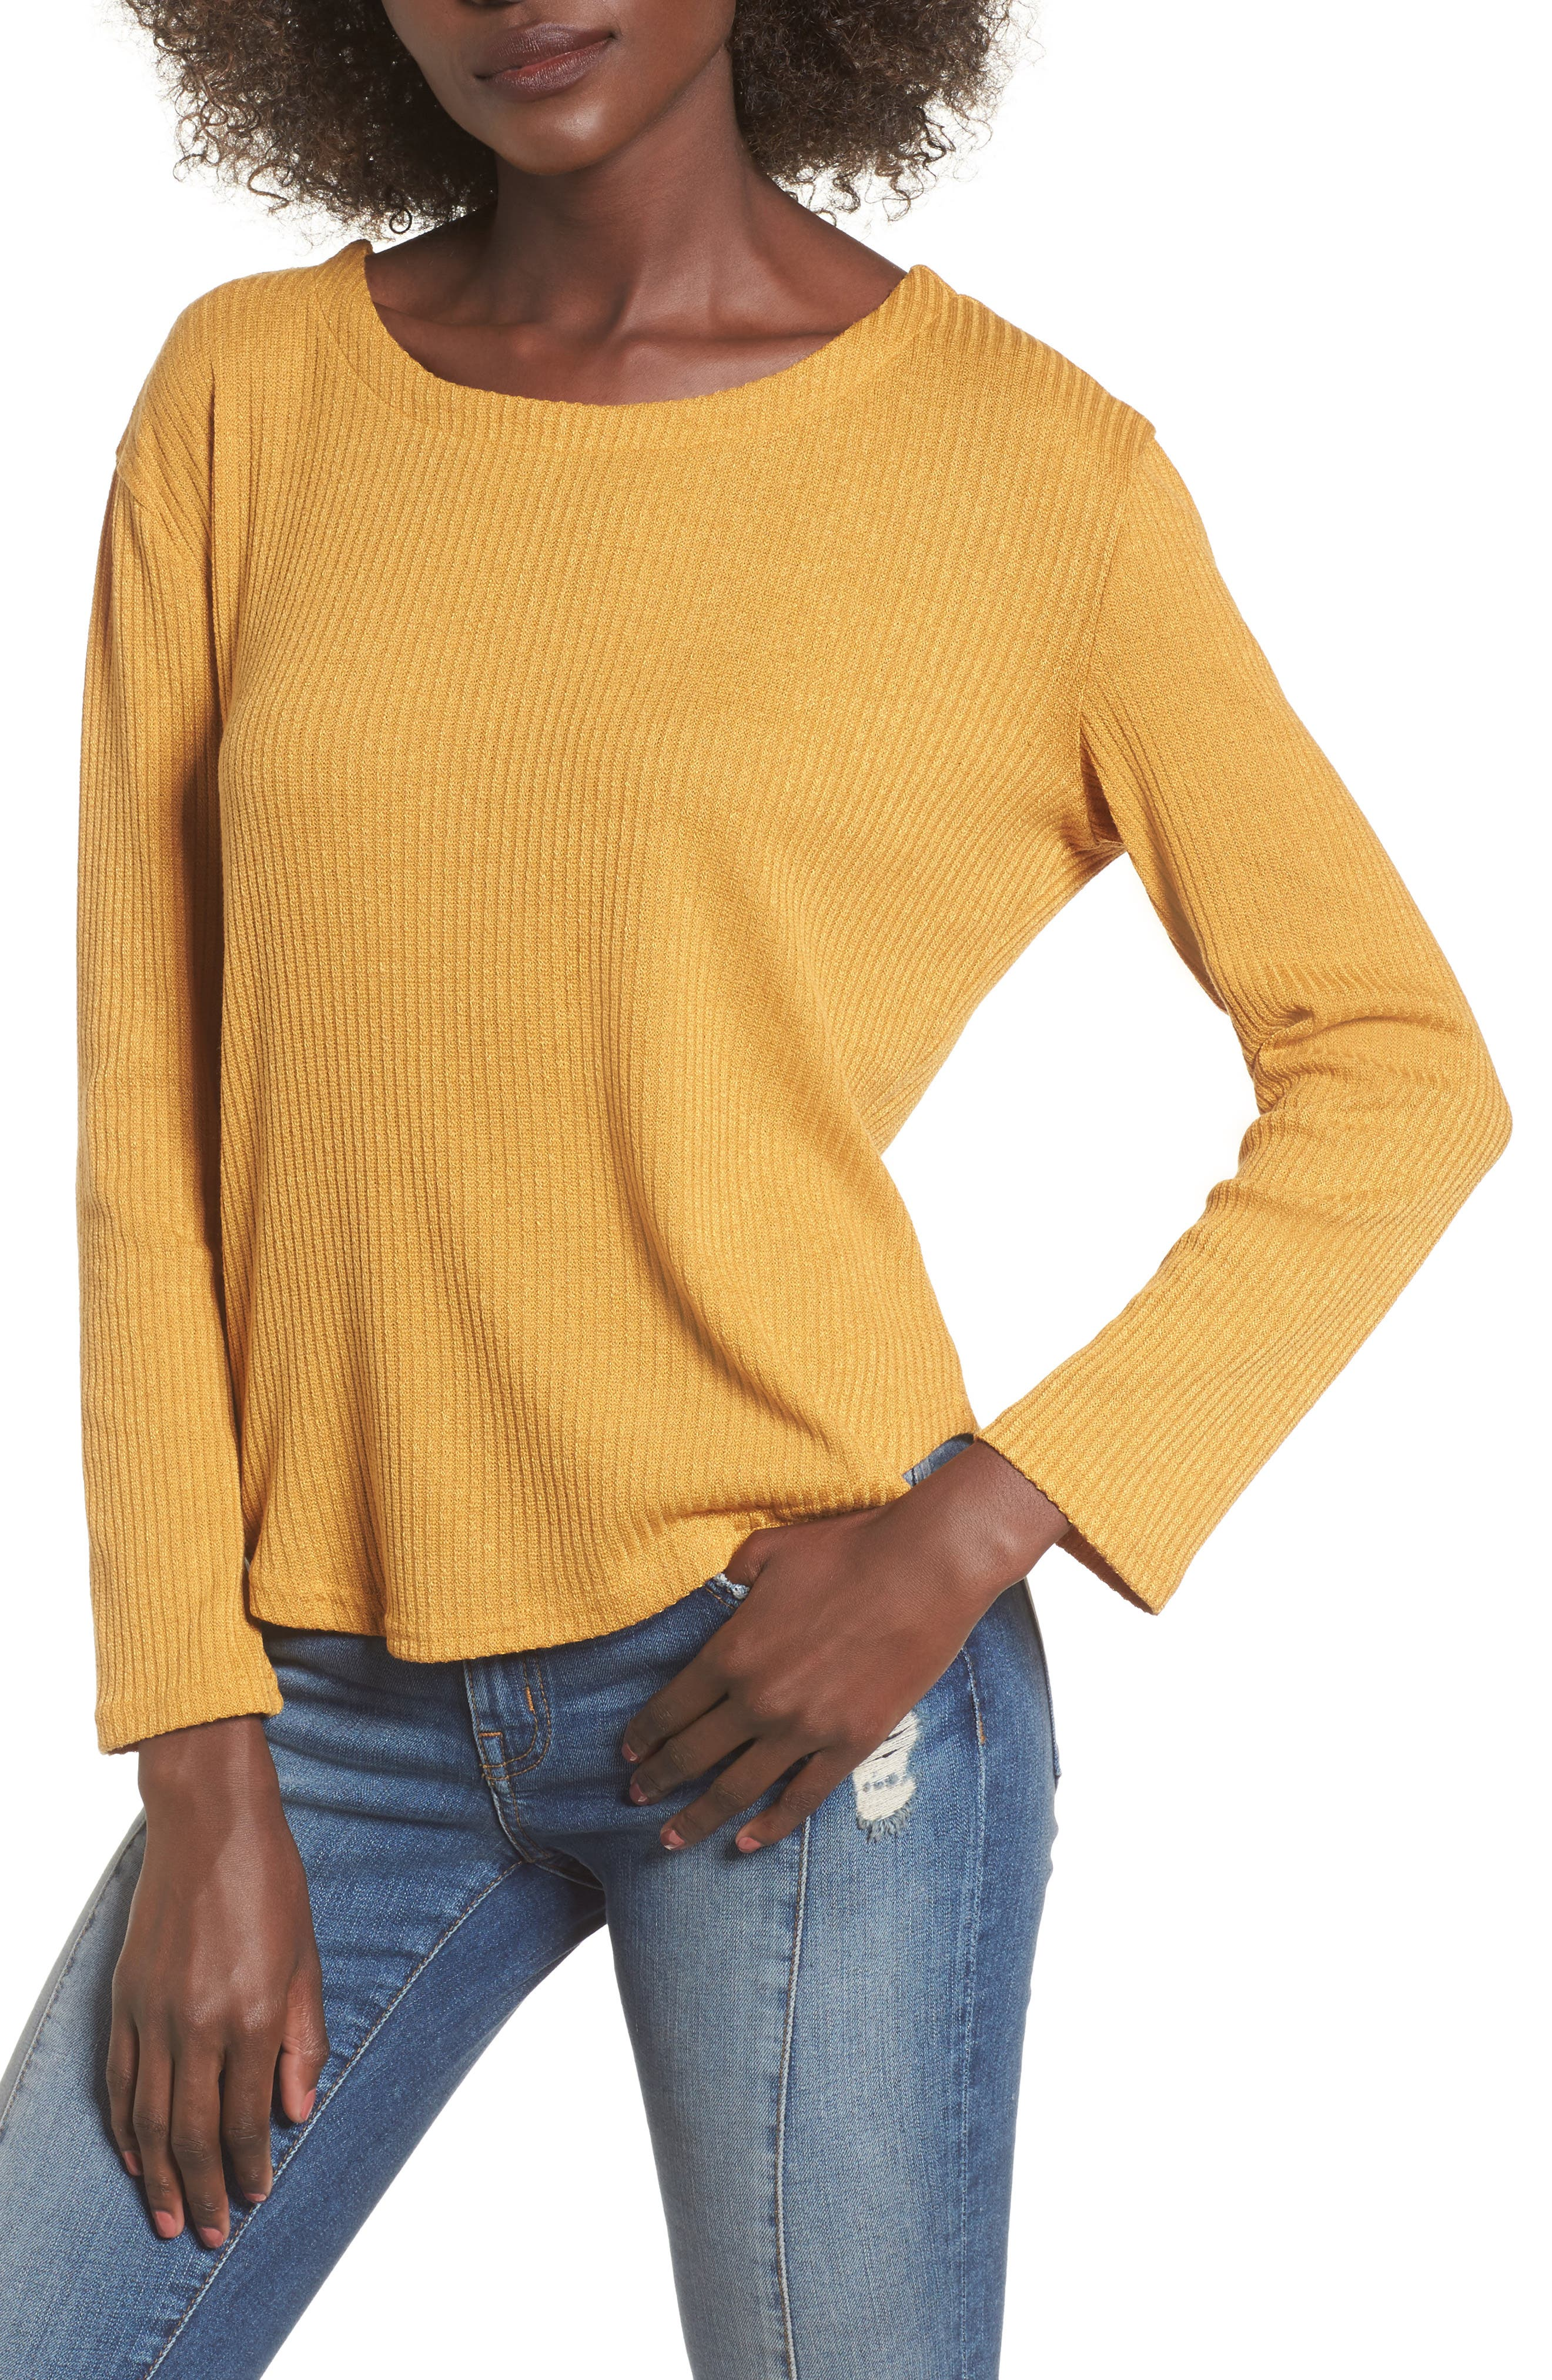 Lira Clothing Sparrow Thermal Top